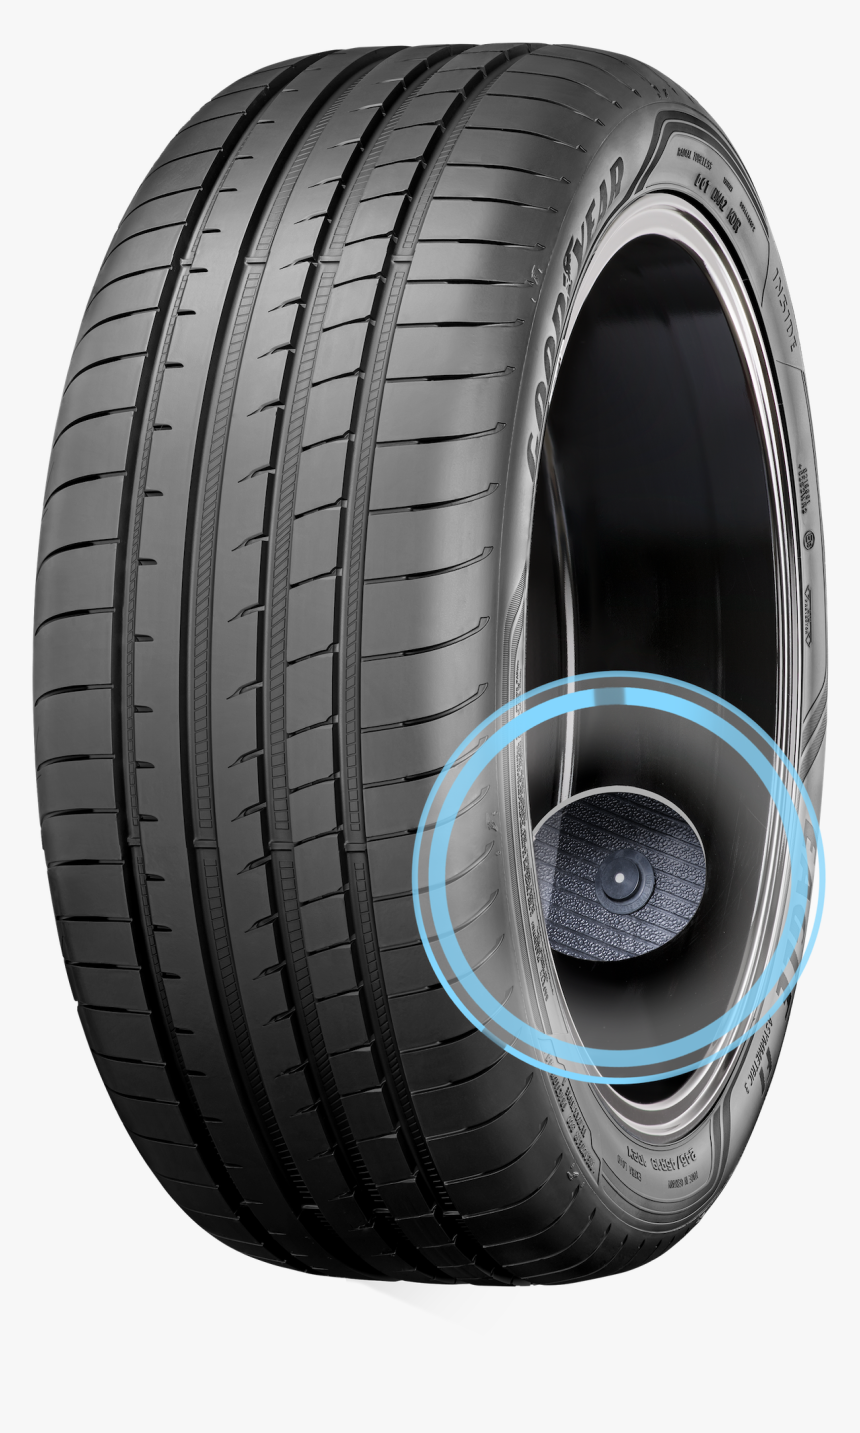 Intelligent Tire - Sensor Placement - Efficientgrip Performance With Electric Drive Technology, HD Png Download, Free Download